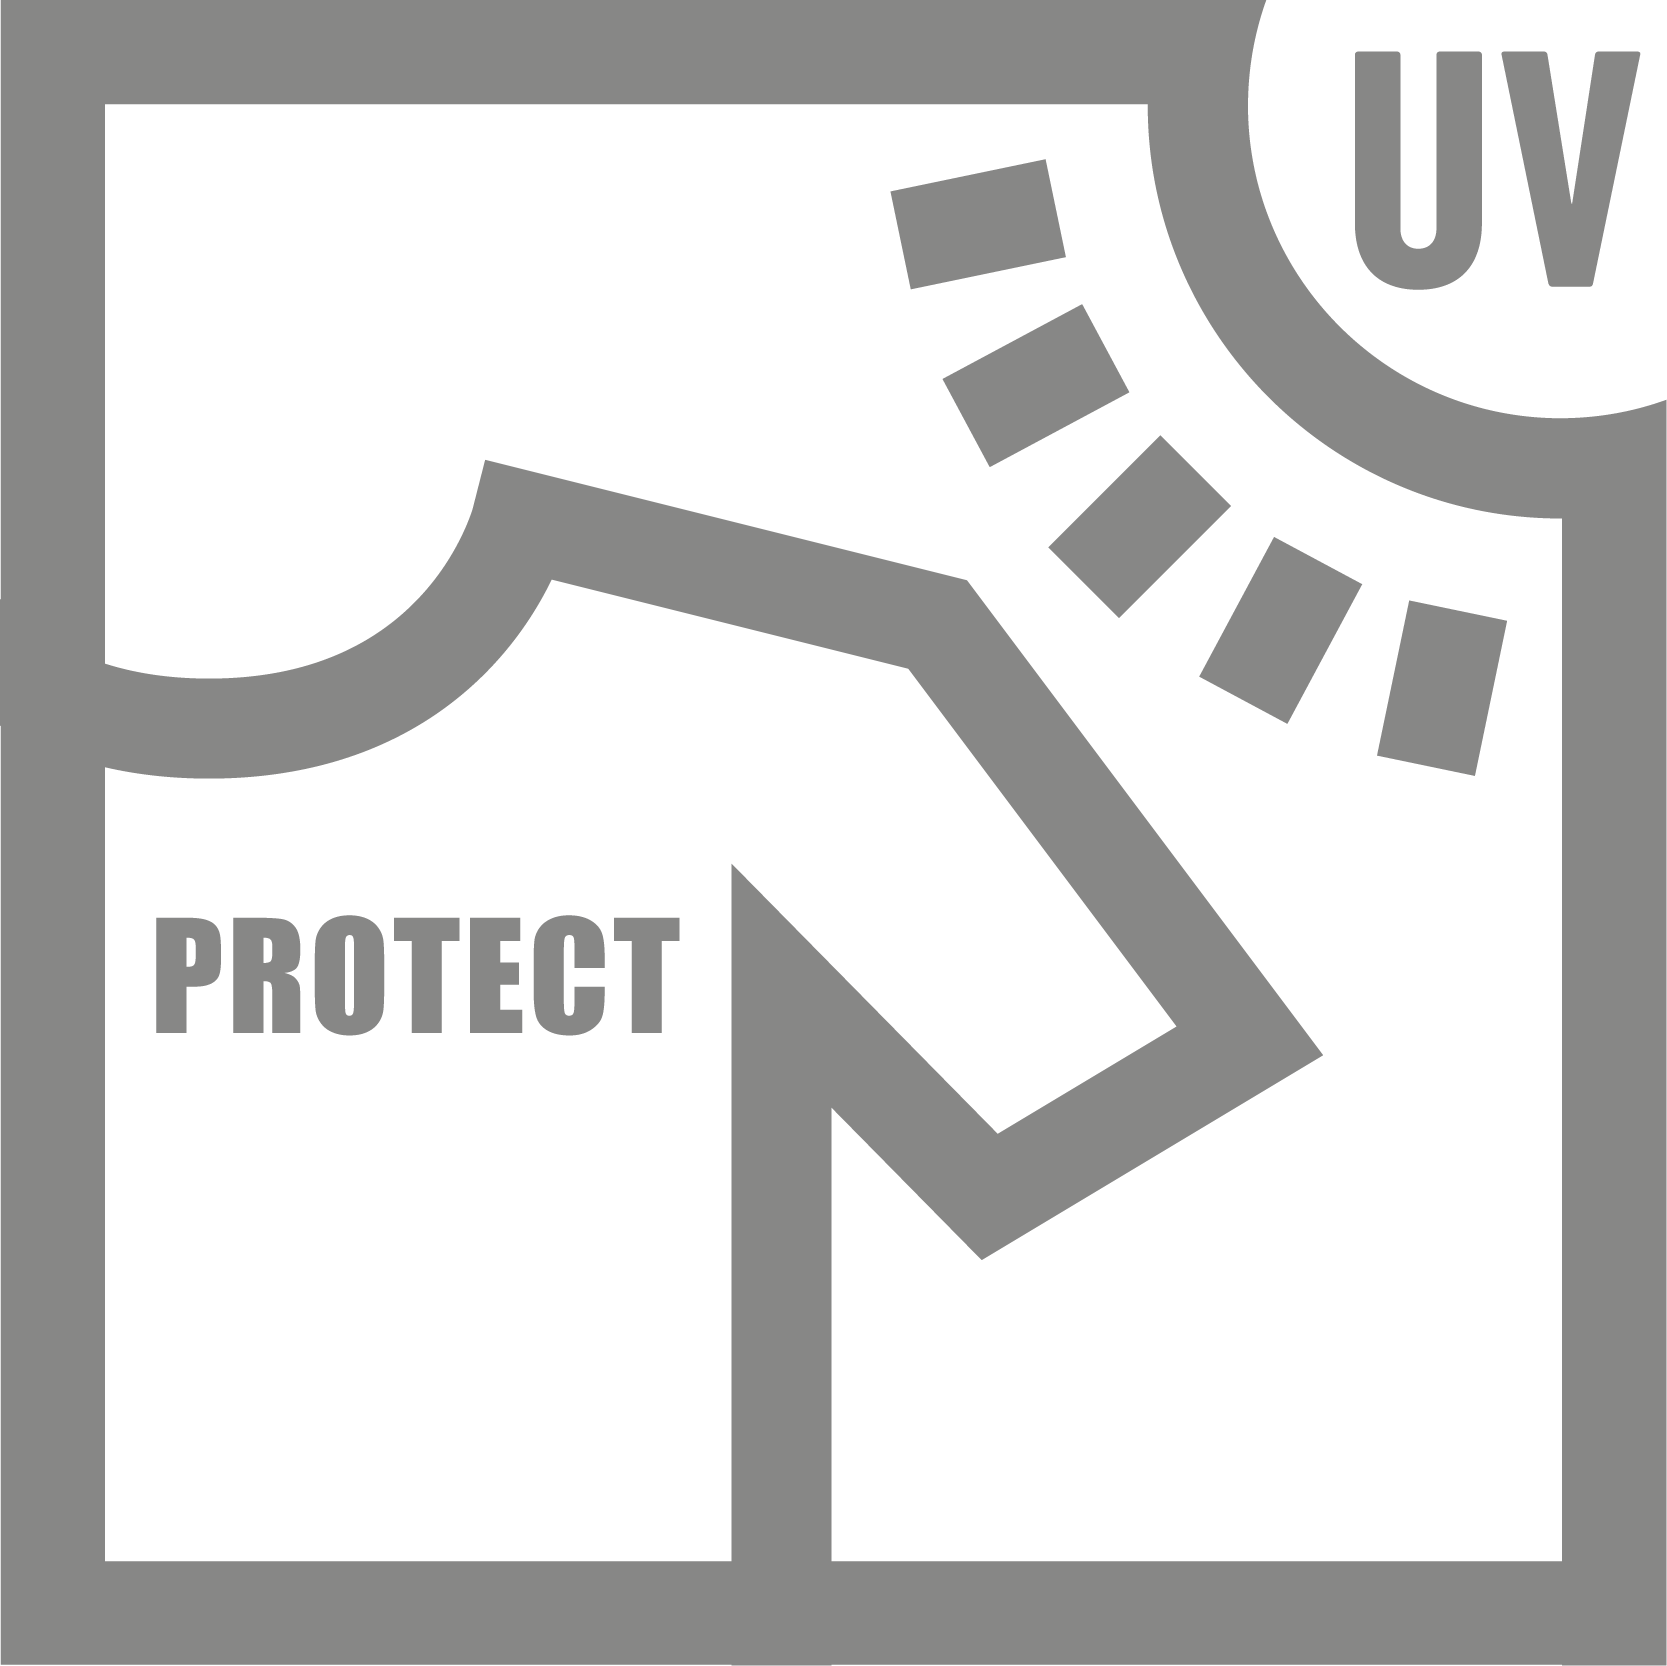 Protection UV